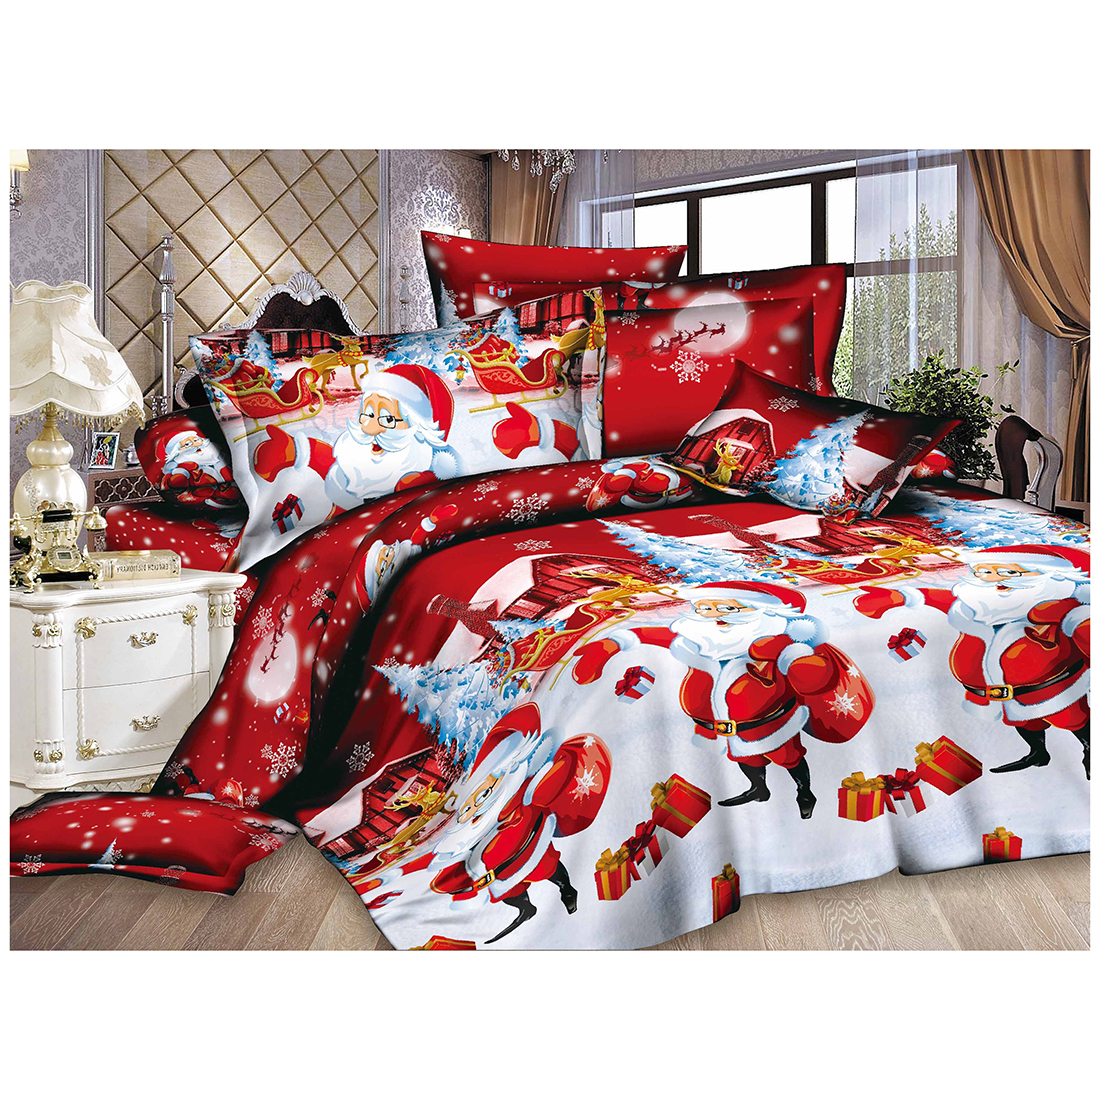 Christmas Home textile Cotton bedclothes high-quality 4pc bedding set